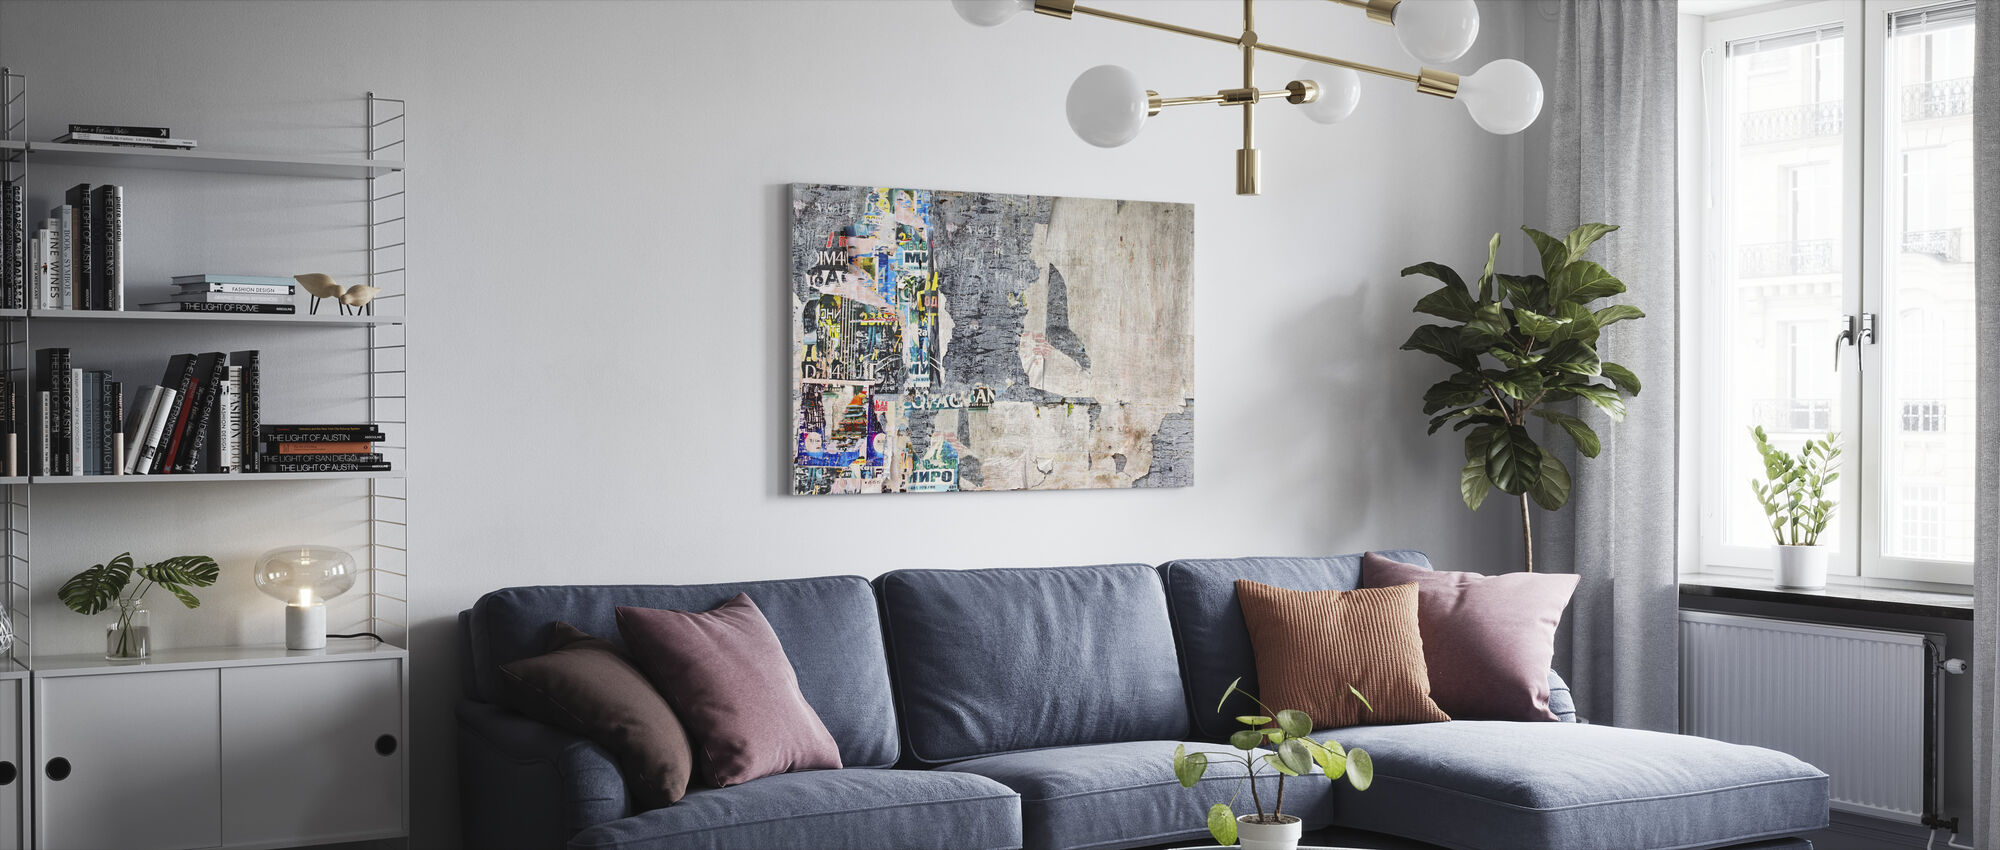 Wood Billboard with Torn Posters - Canvas print - Living Room